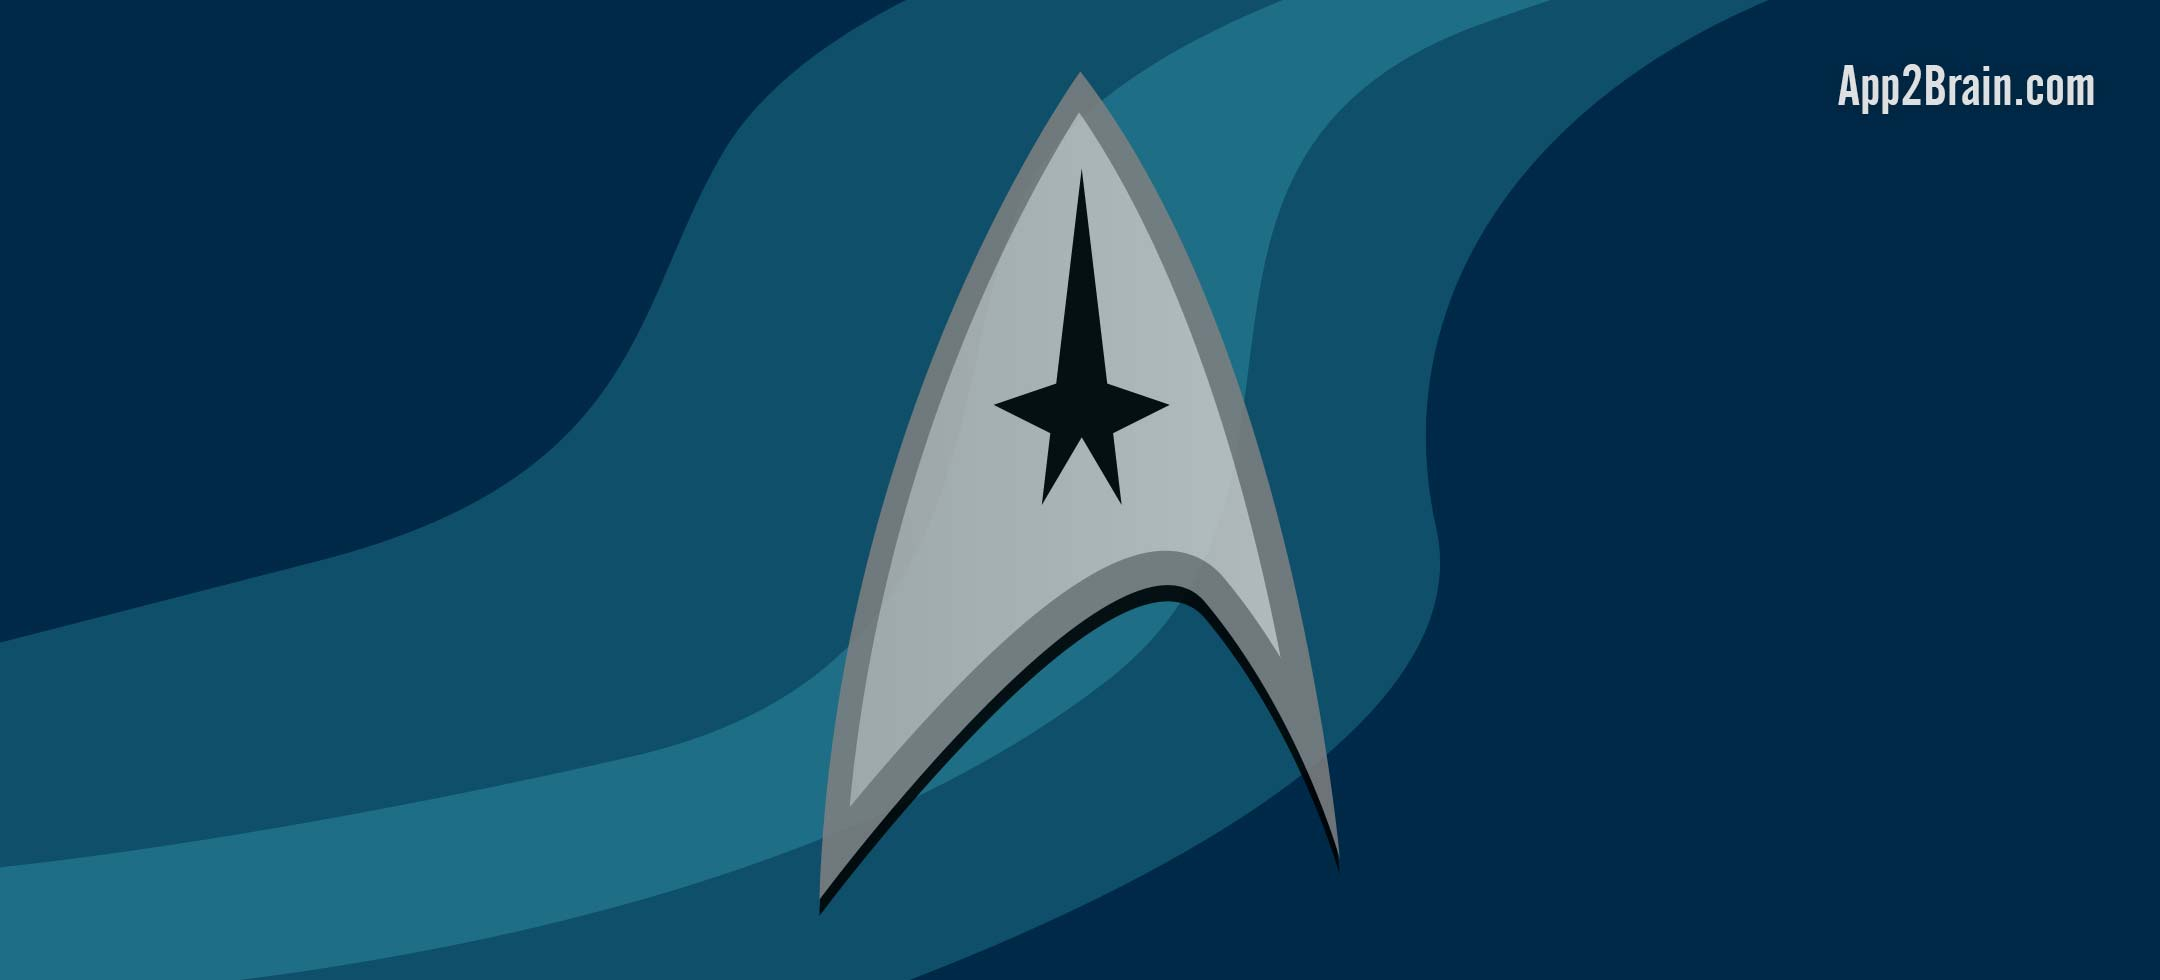 What a Star Trek Episode can tell us about language learning